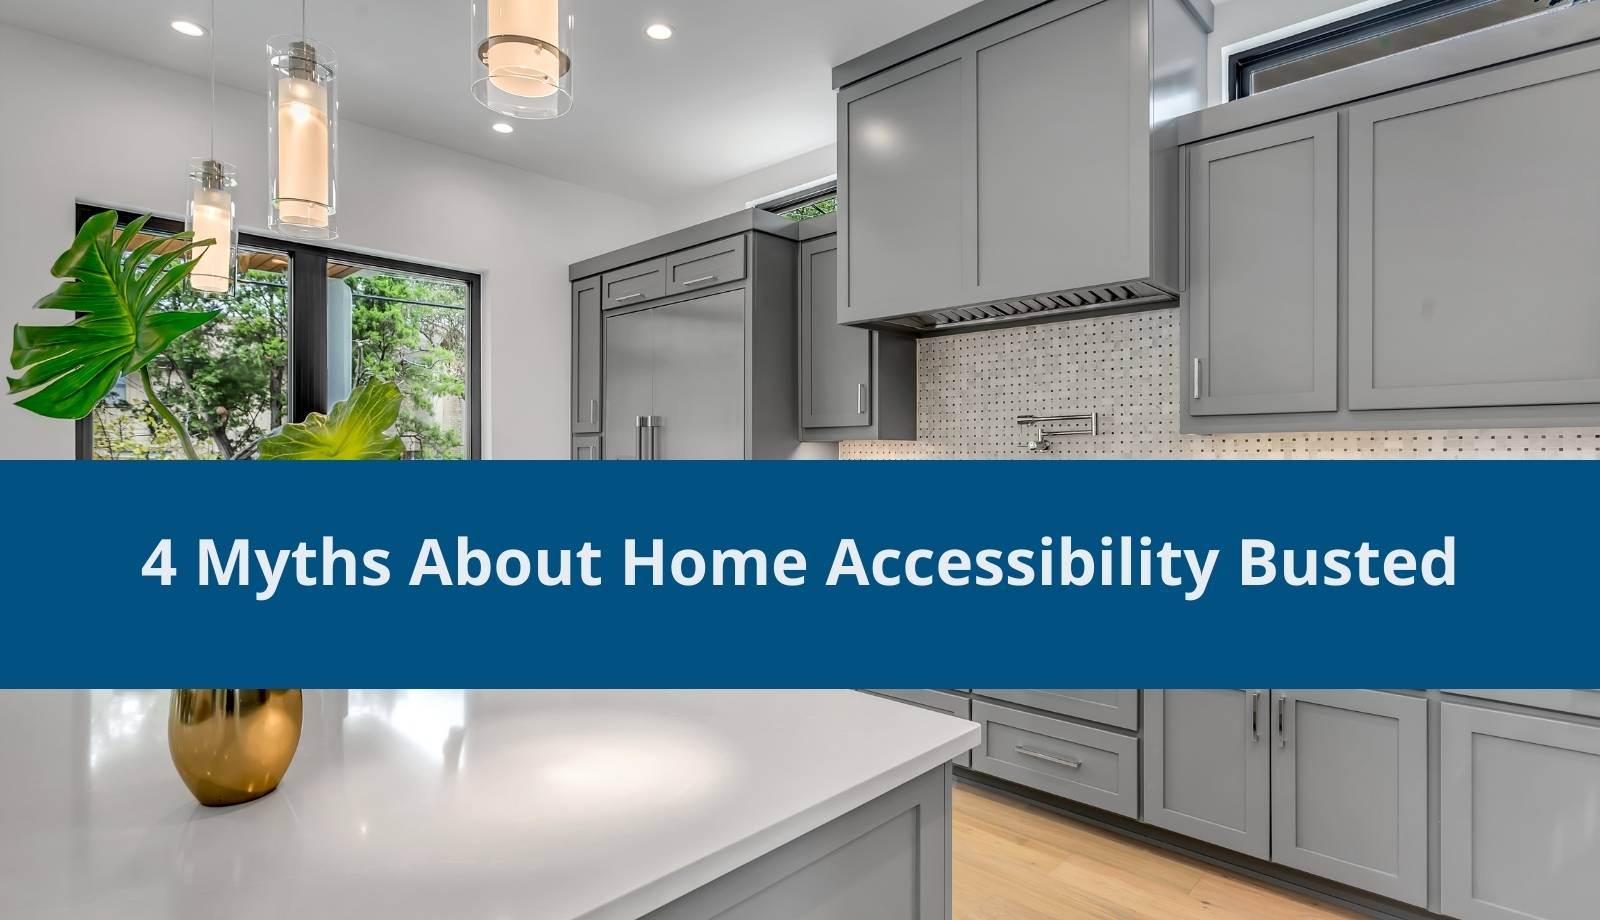 4 Myths About Home Accessibility Busted